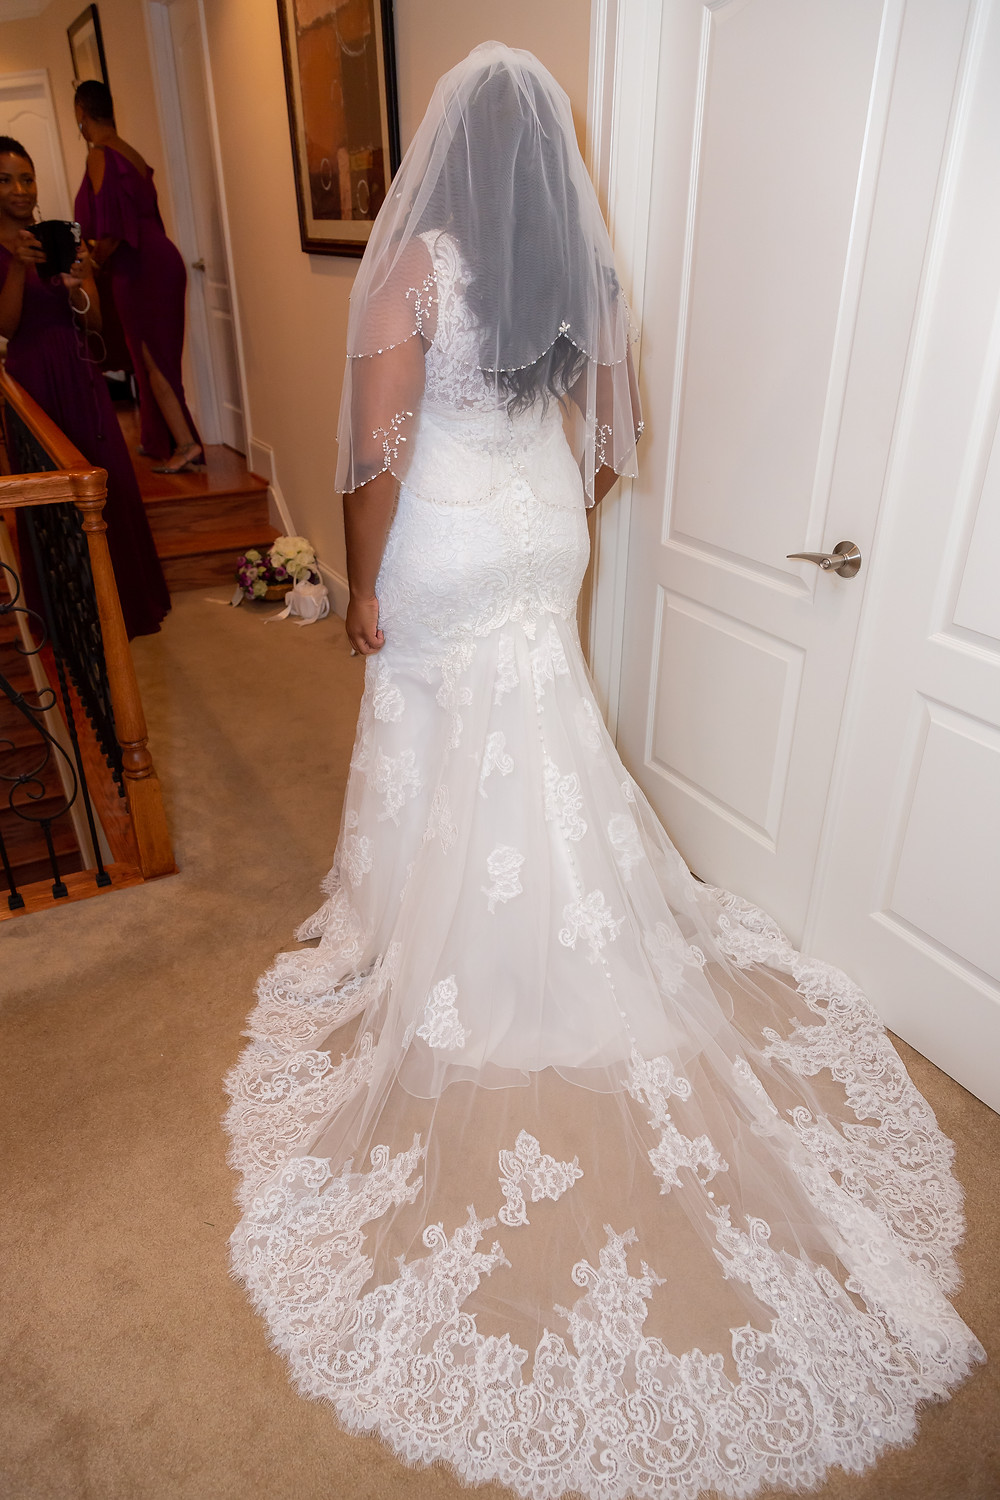 Jordyn in her wedding dress before the ceremony in Fairfax, Virginia.